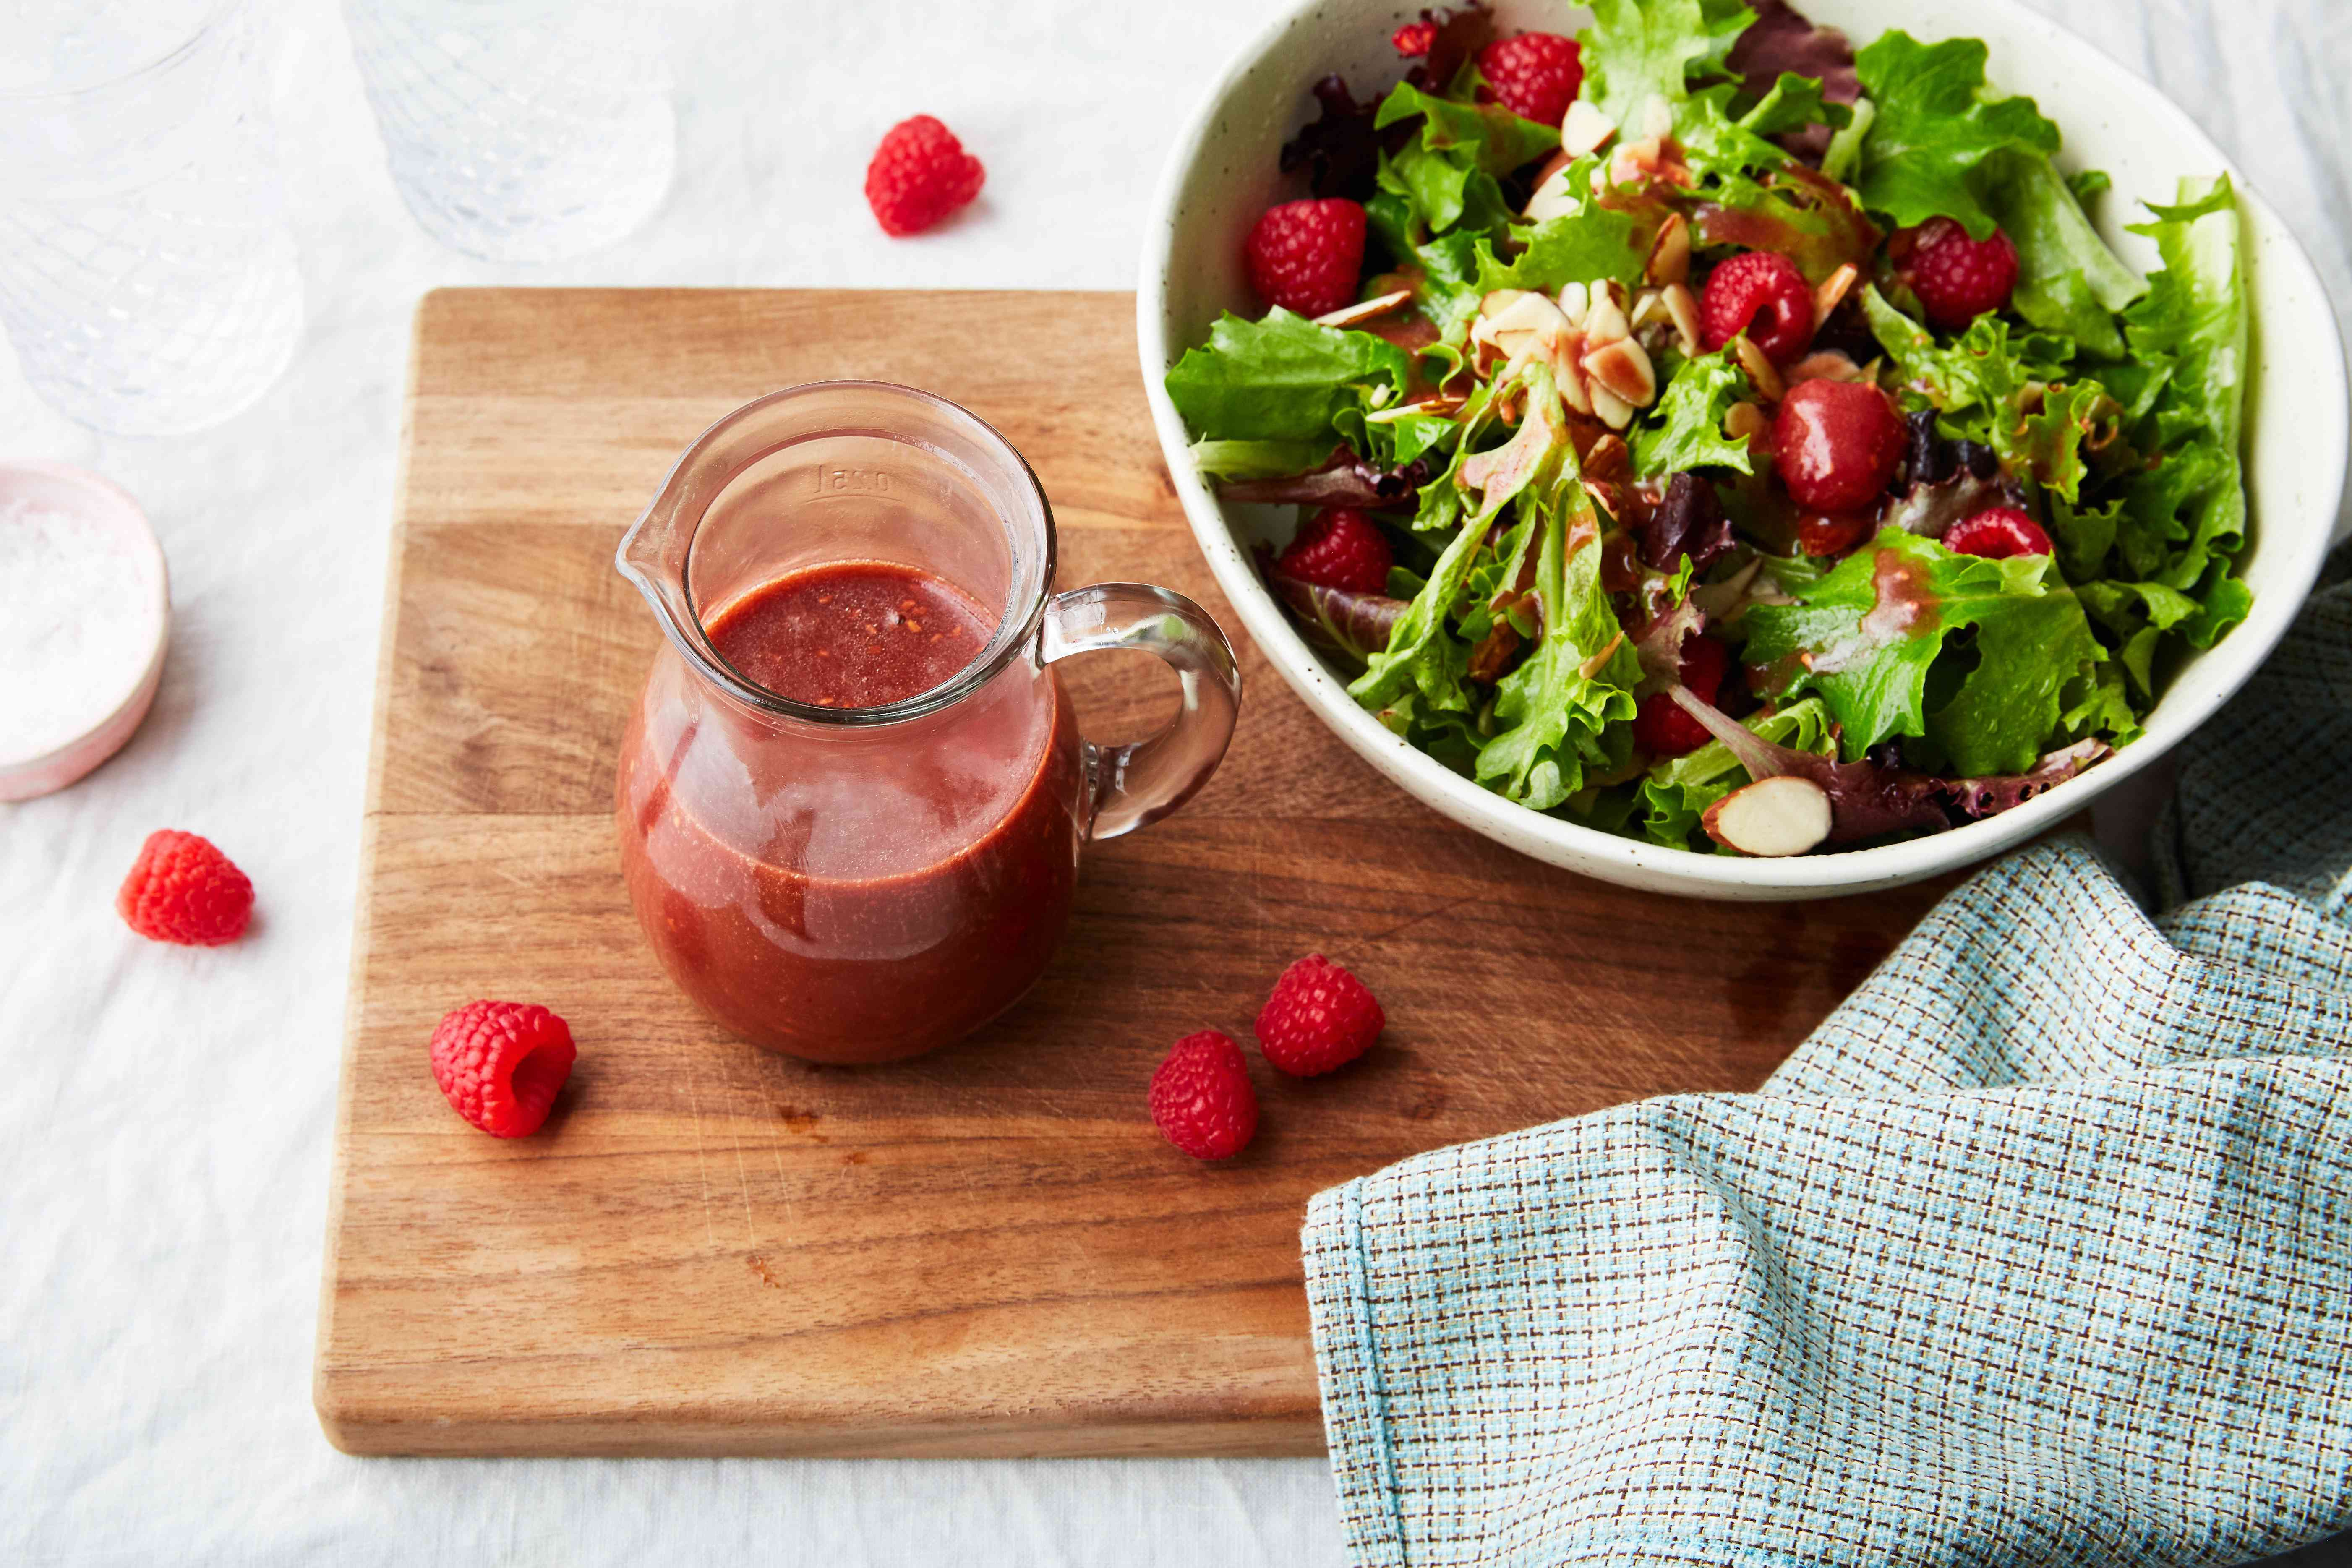 Easy vegan raspberry vinaigrette salad dressing